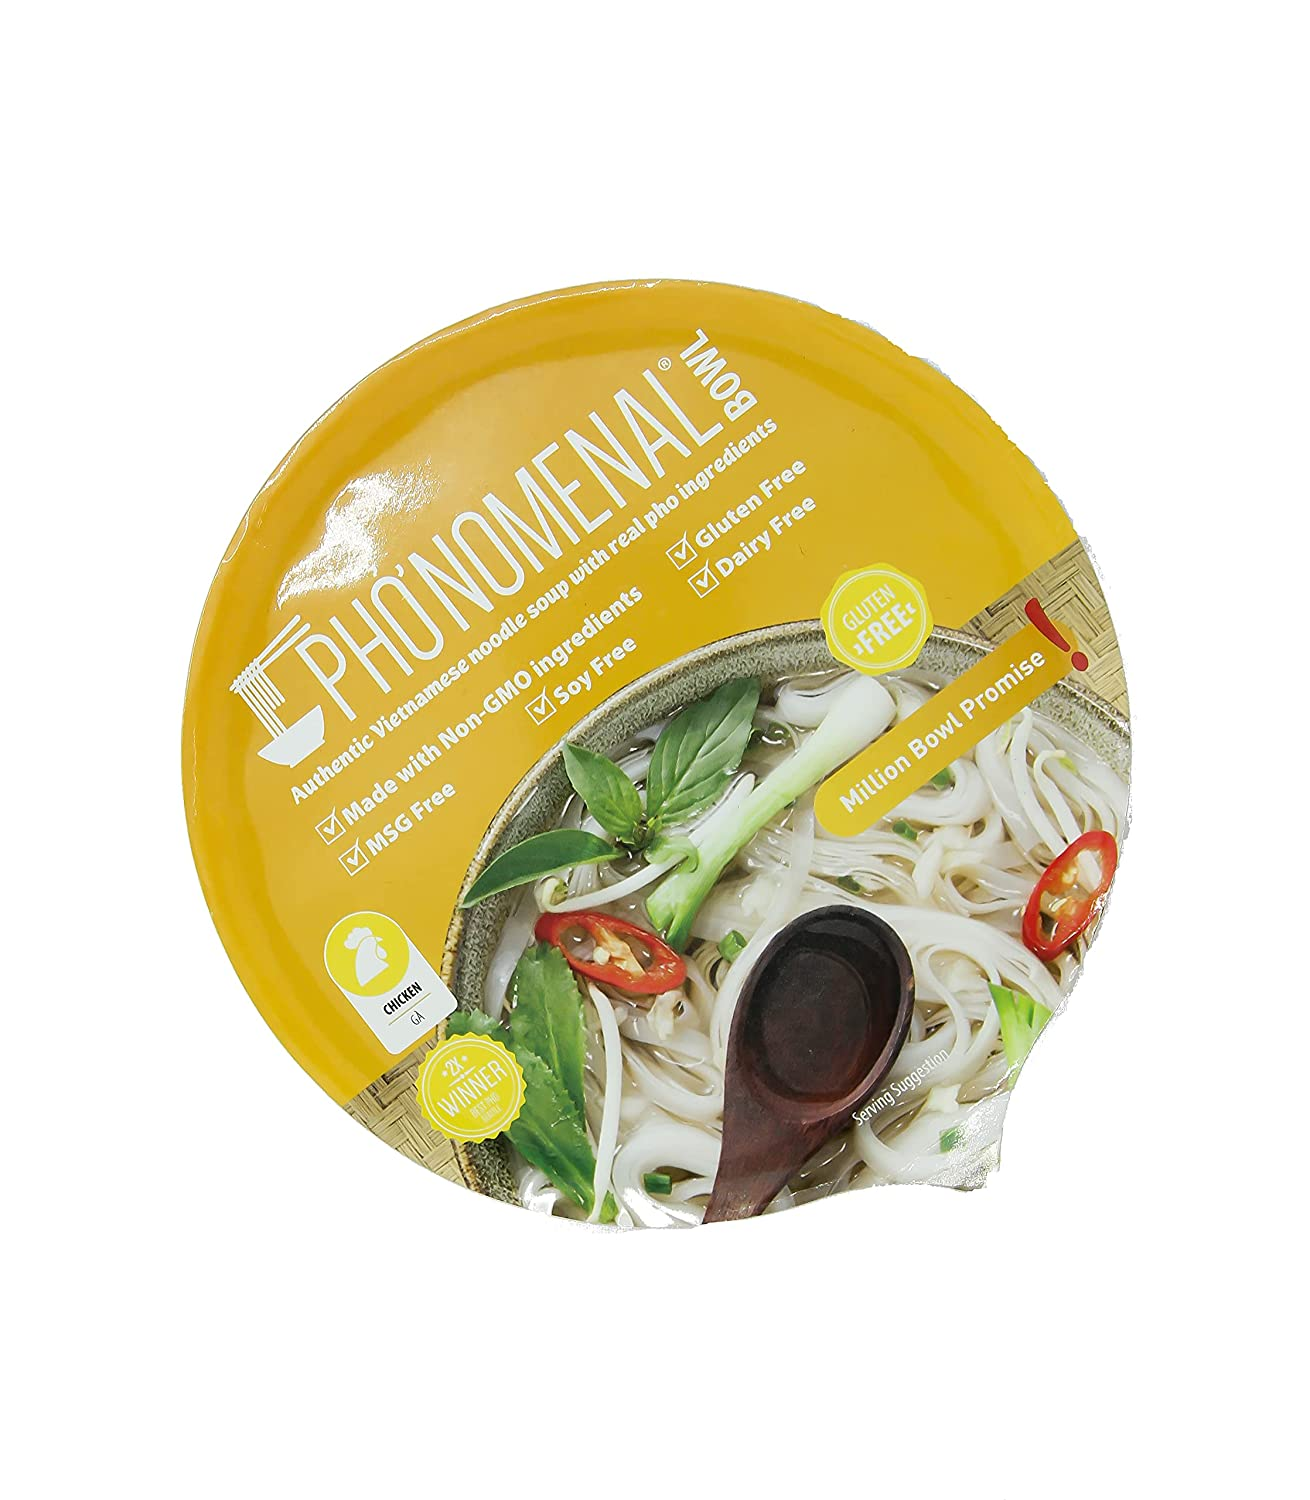 Pho'nomenal 2021 autumn and winter new Bowl Instant Pho Noodles Viet Outlet SALE Low Free Gluten Sodium